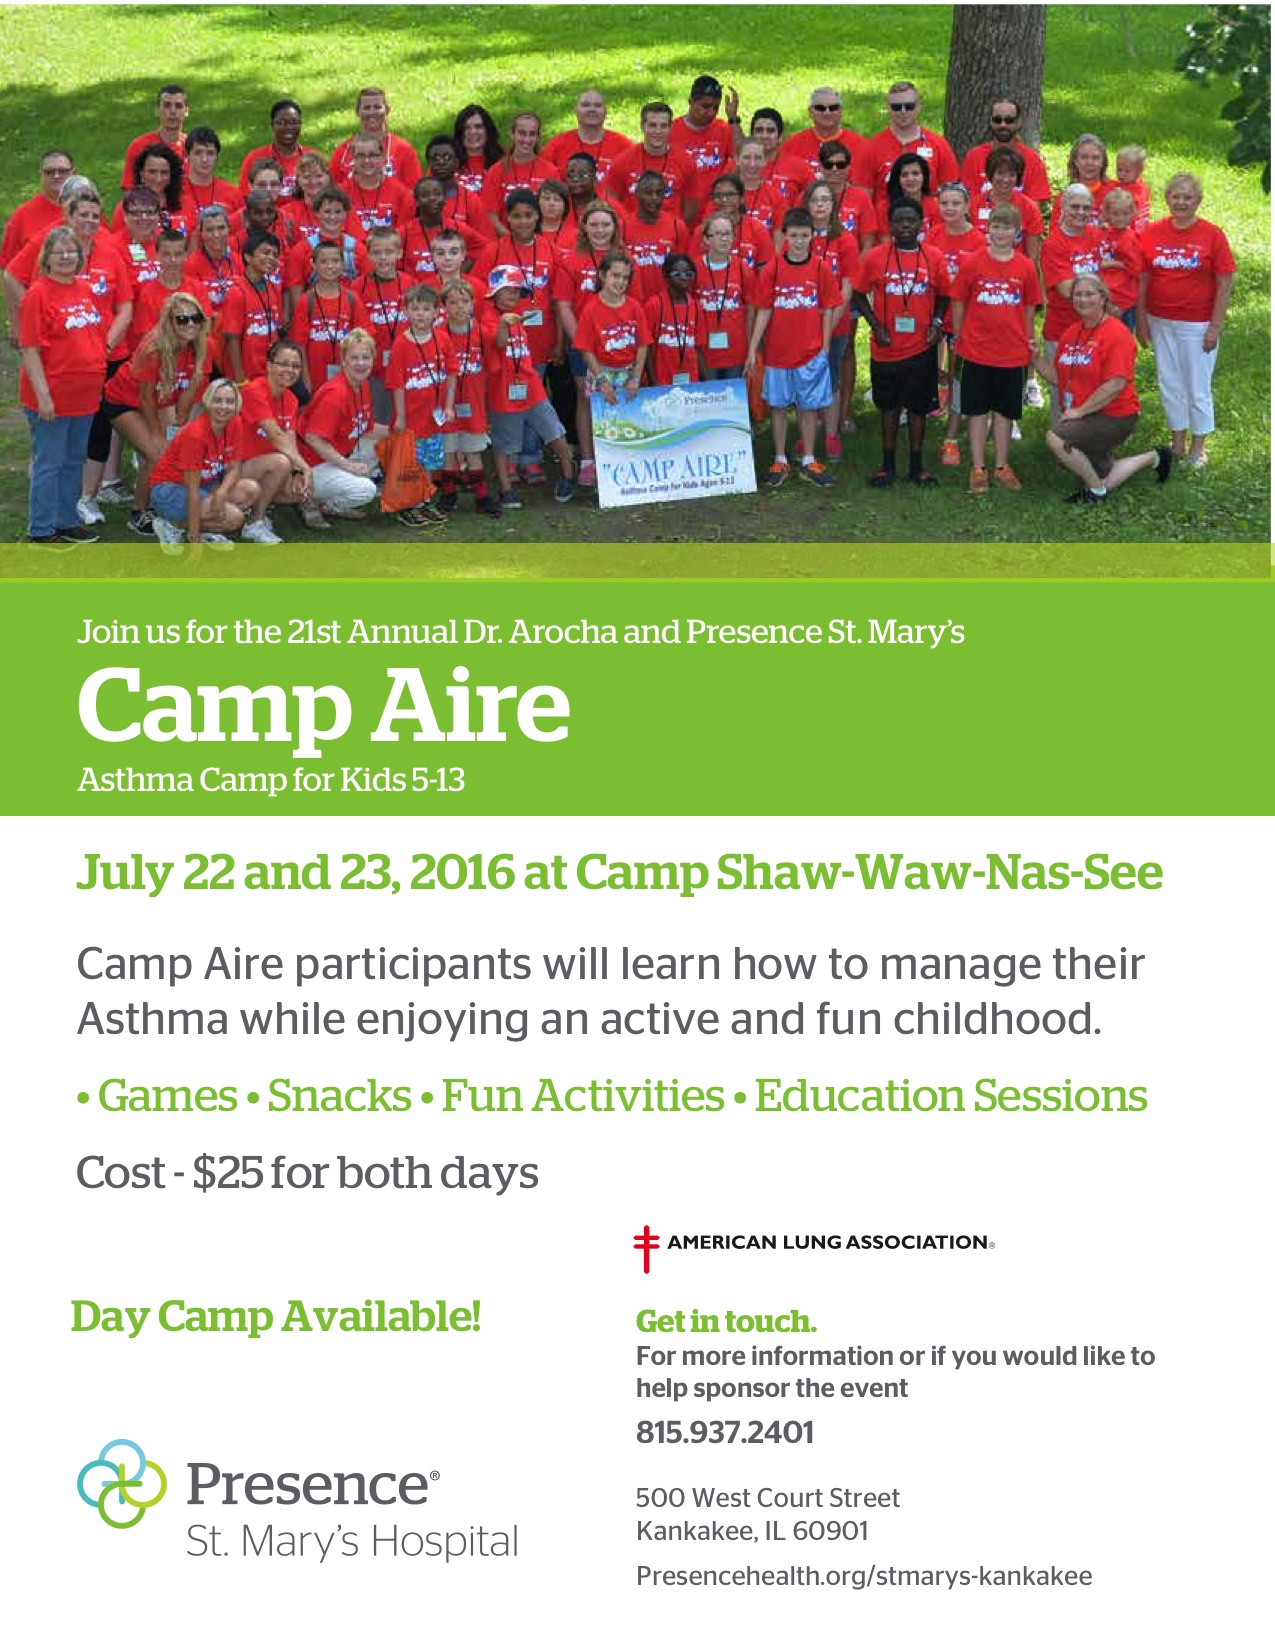 Sponsorship was provided to CampAire for students to attend asthma camp in 2015 and 2016.